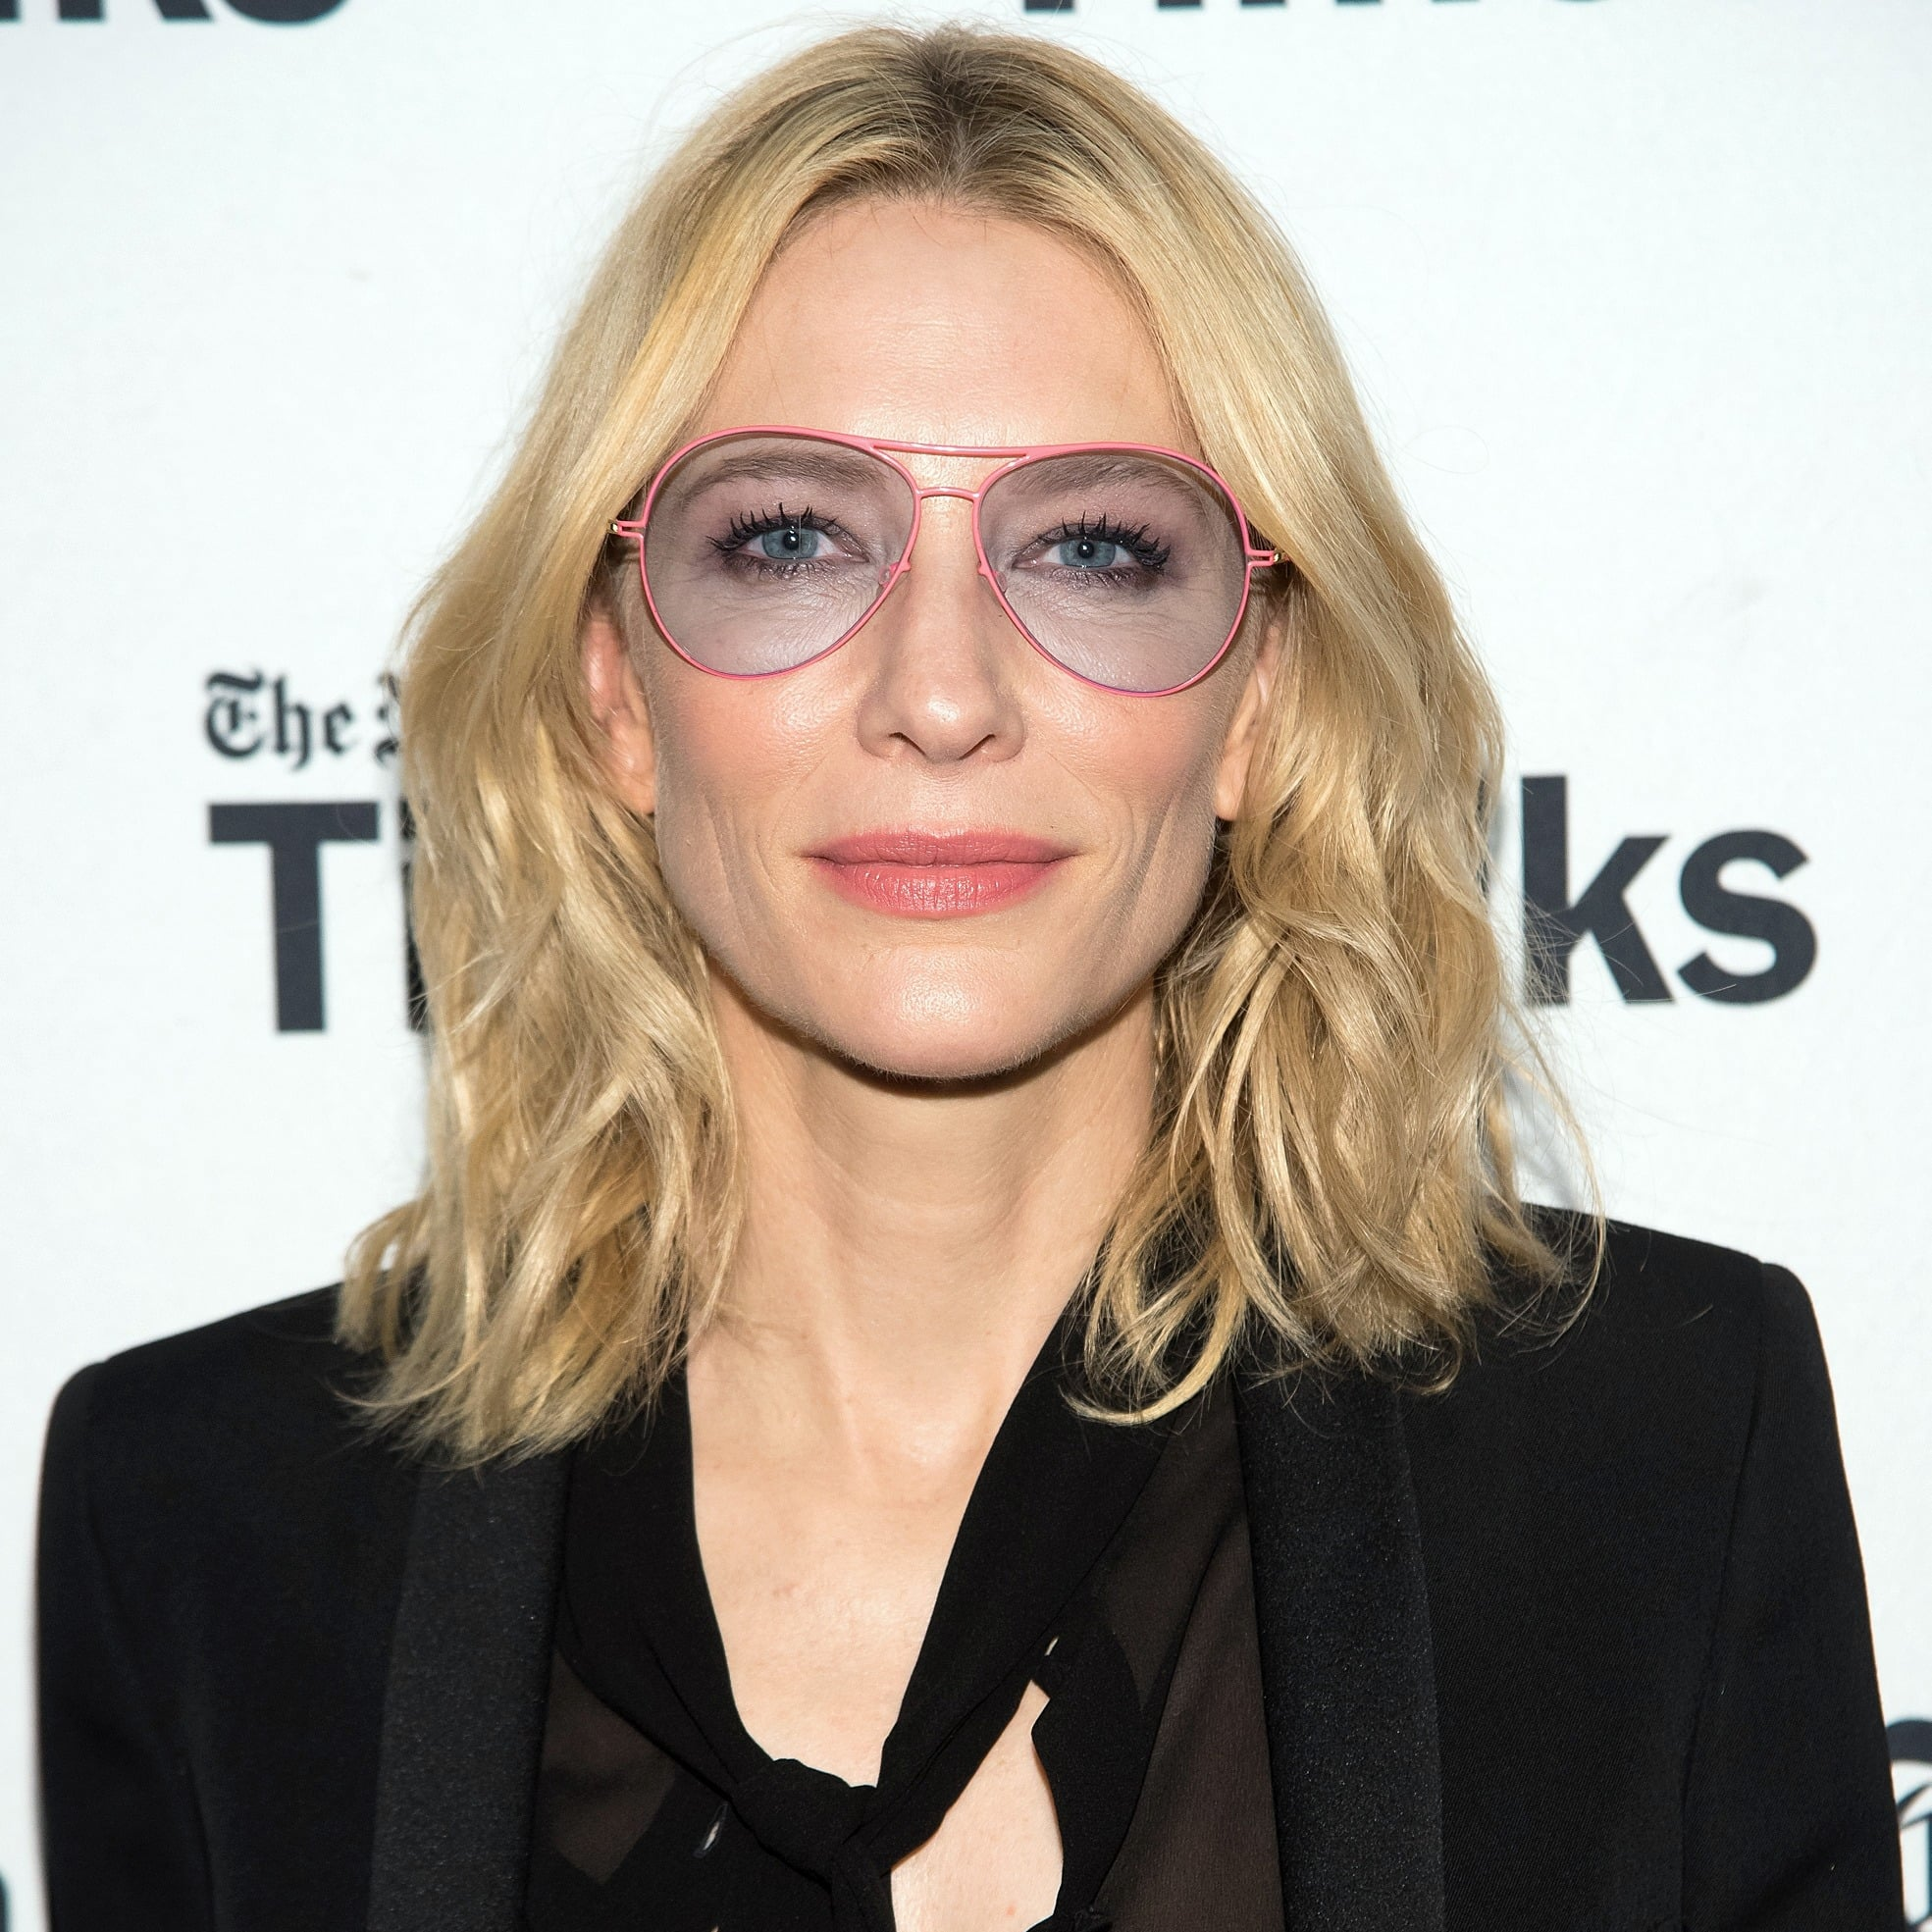 35a56c2f50 Pictures of Female Celebrities Wearing Glasses